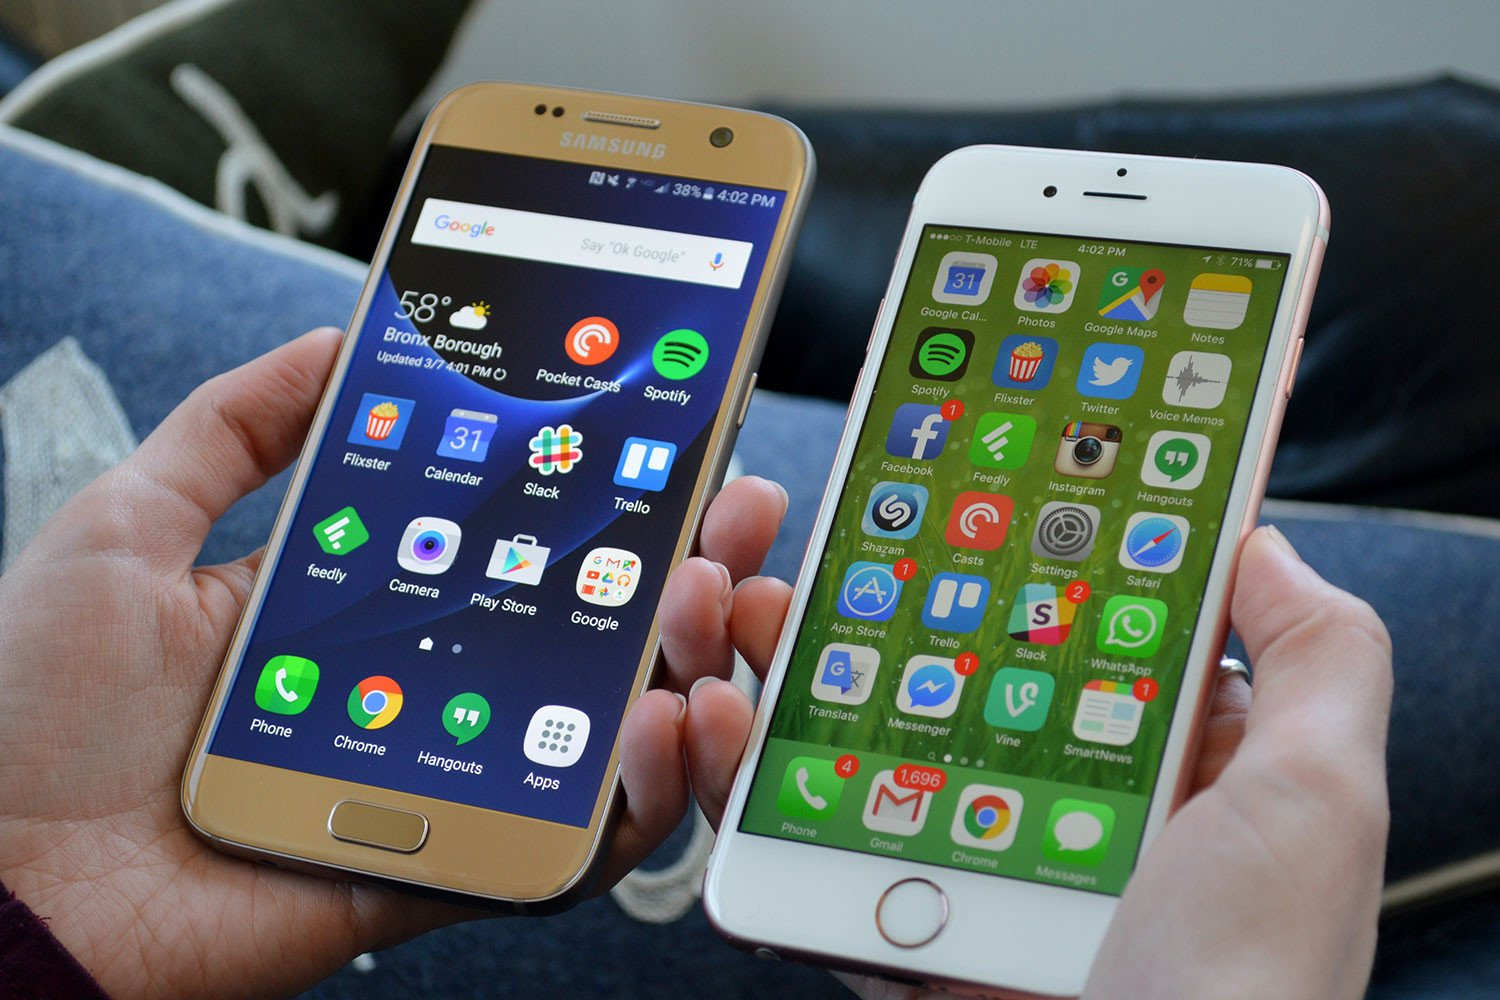 Samsung Galaxy S7 v iPhone 7 – Which Looks Best?